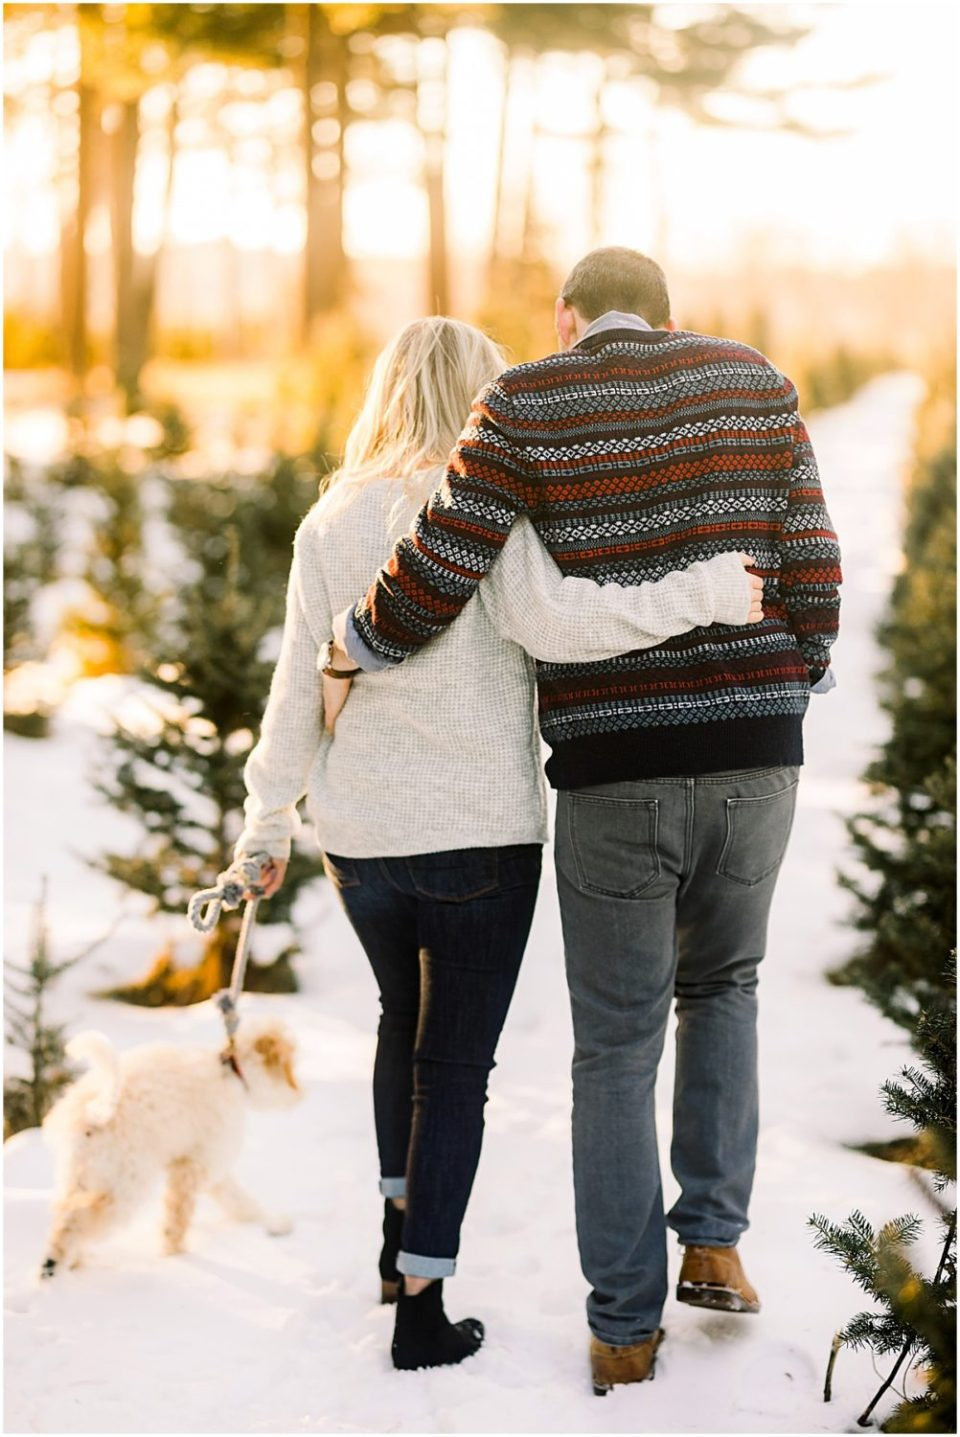 Mini Goldendoodle at winter engagement session in the snow